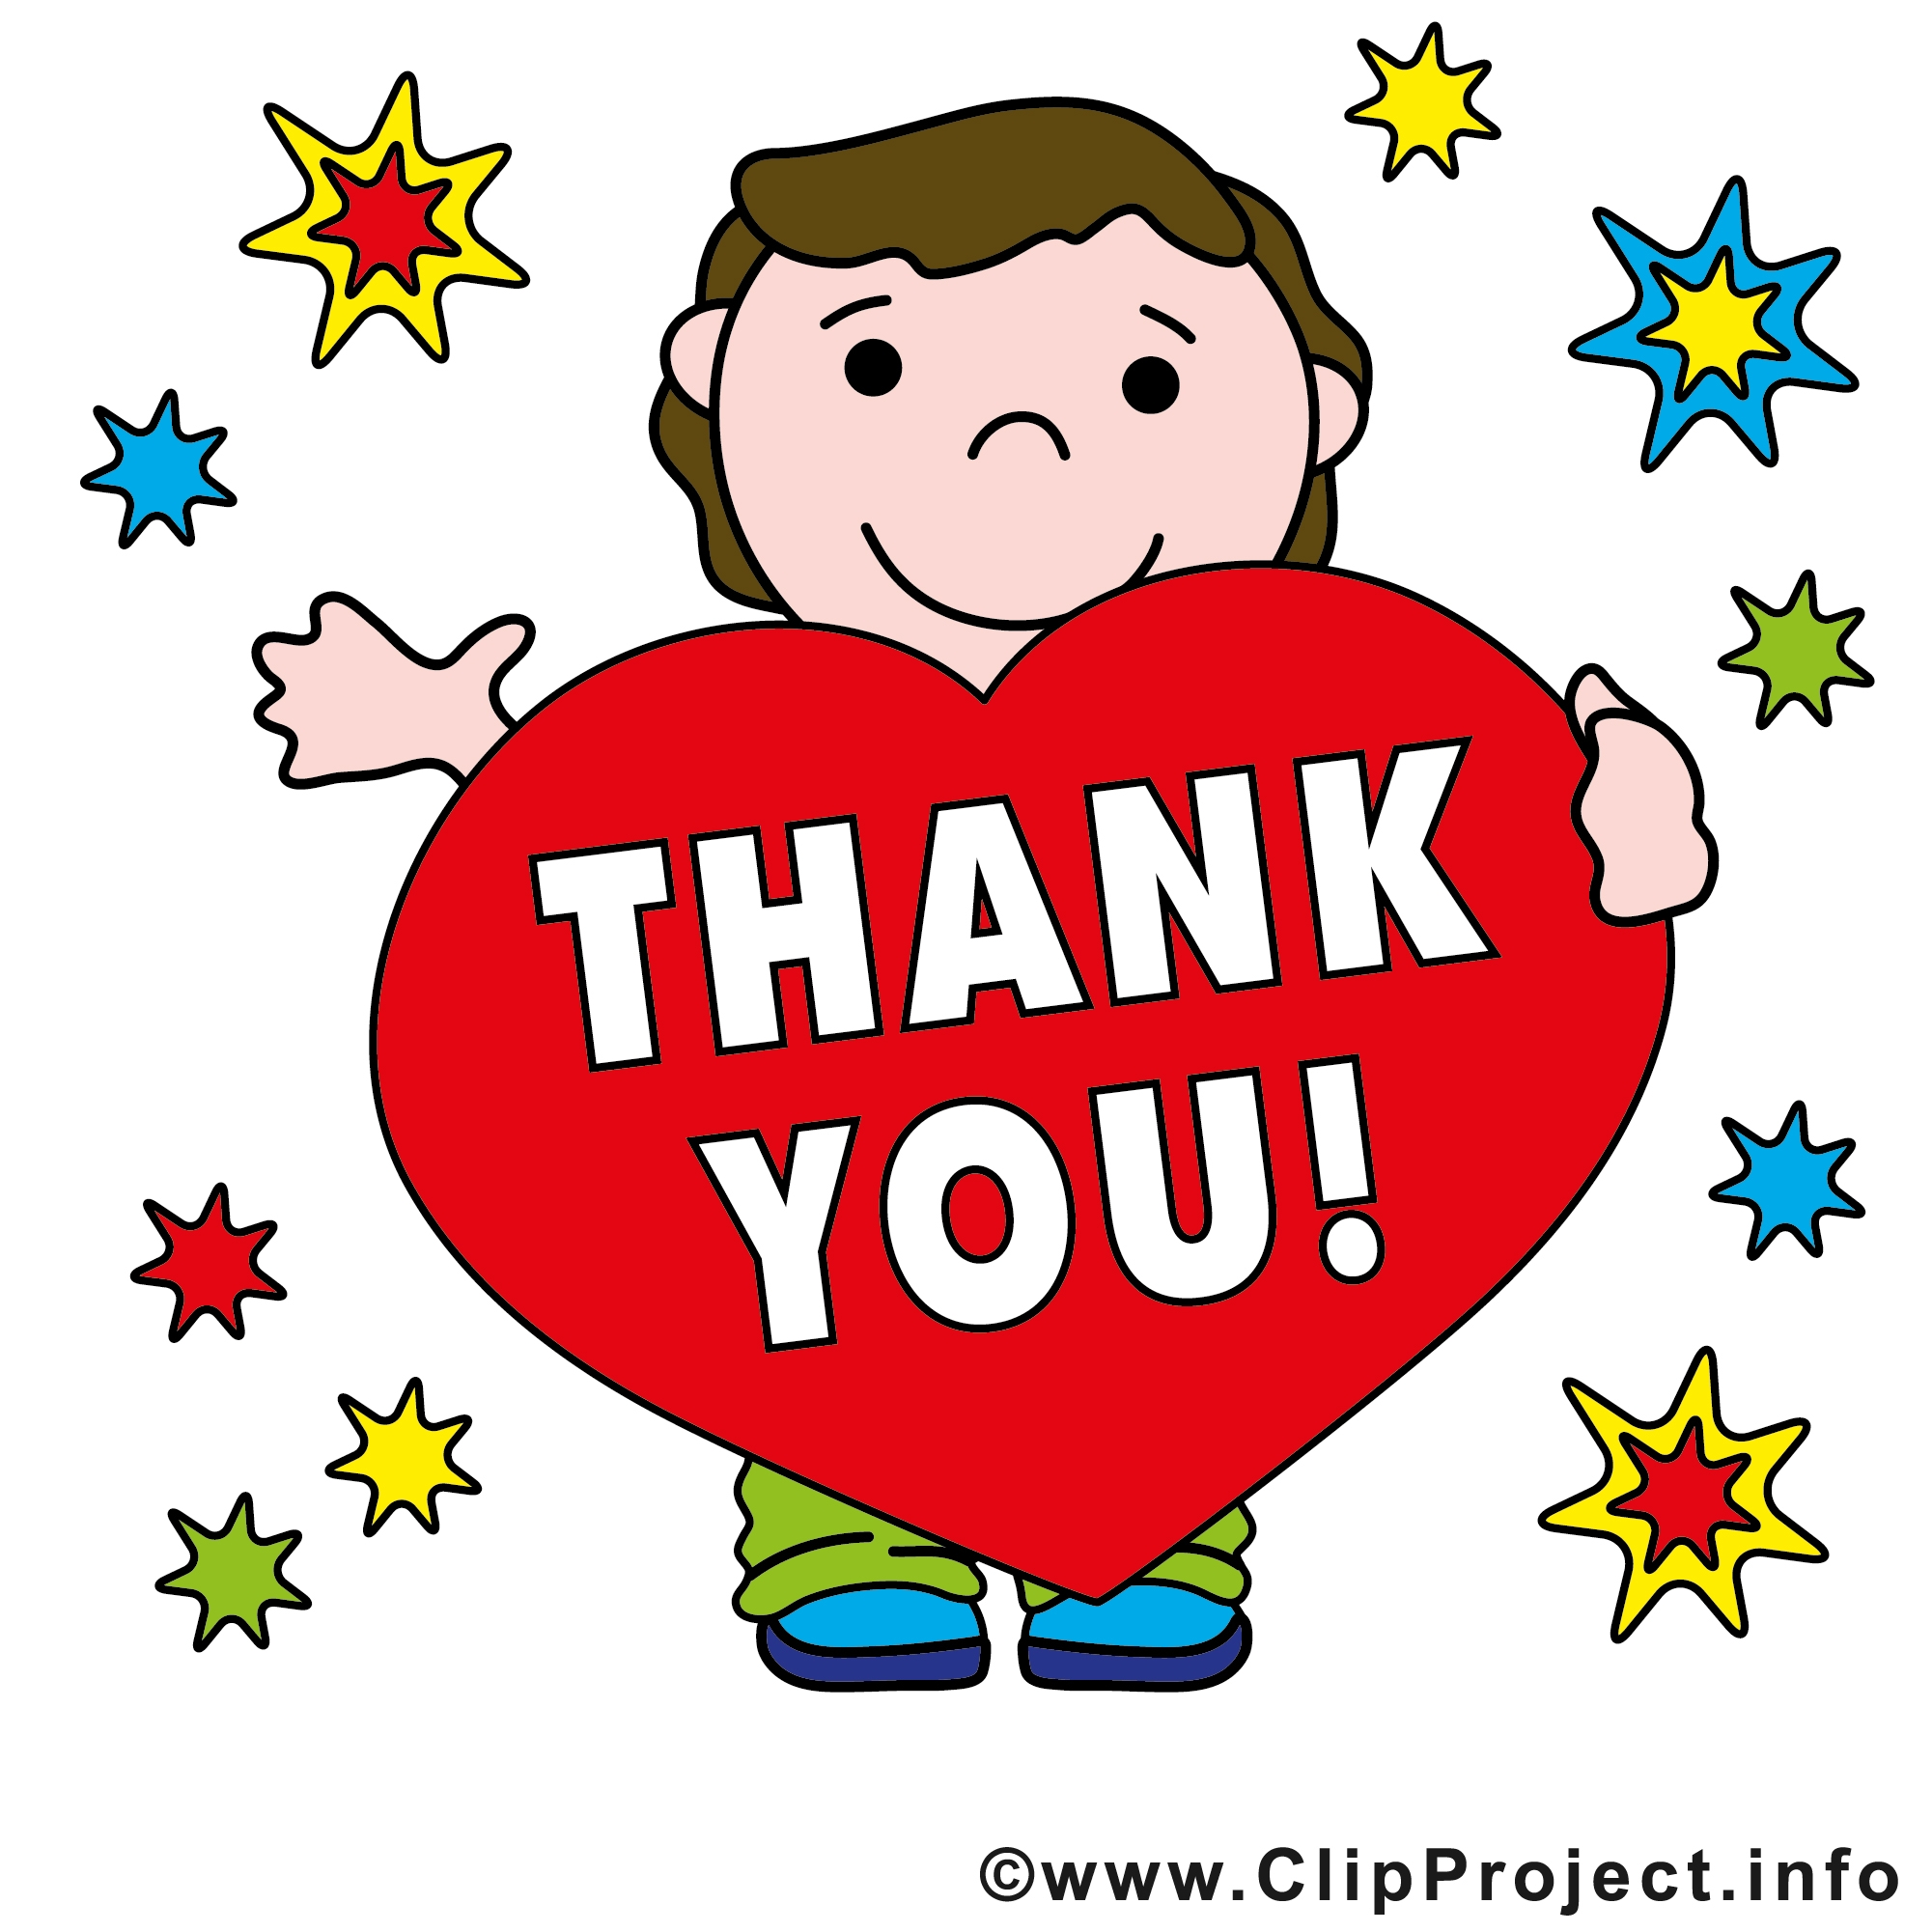 Thank you clipart gift to child clip art free stock Thank You Clipart Funny | Free download best Thank You Clipart Funny ... clip art free stock